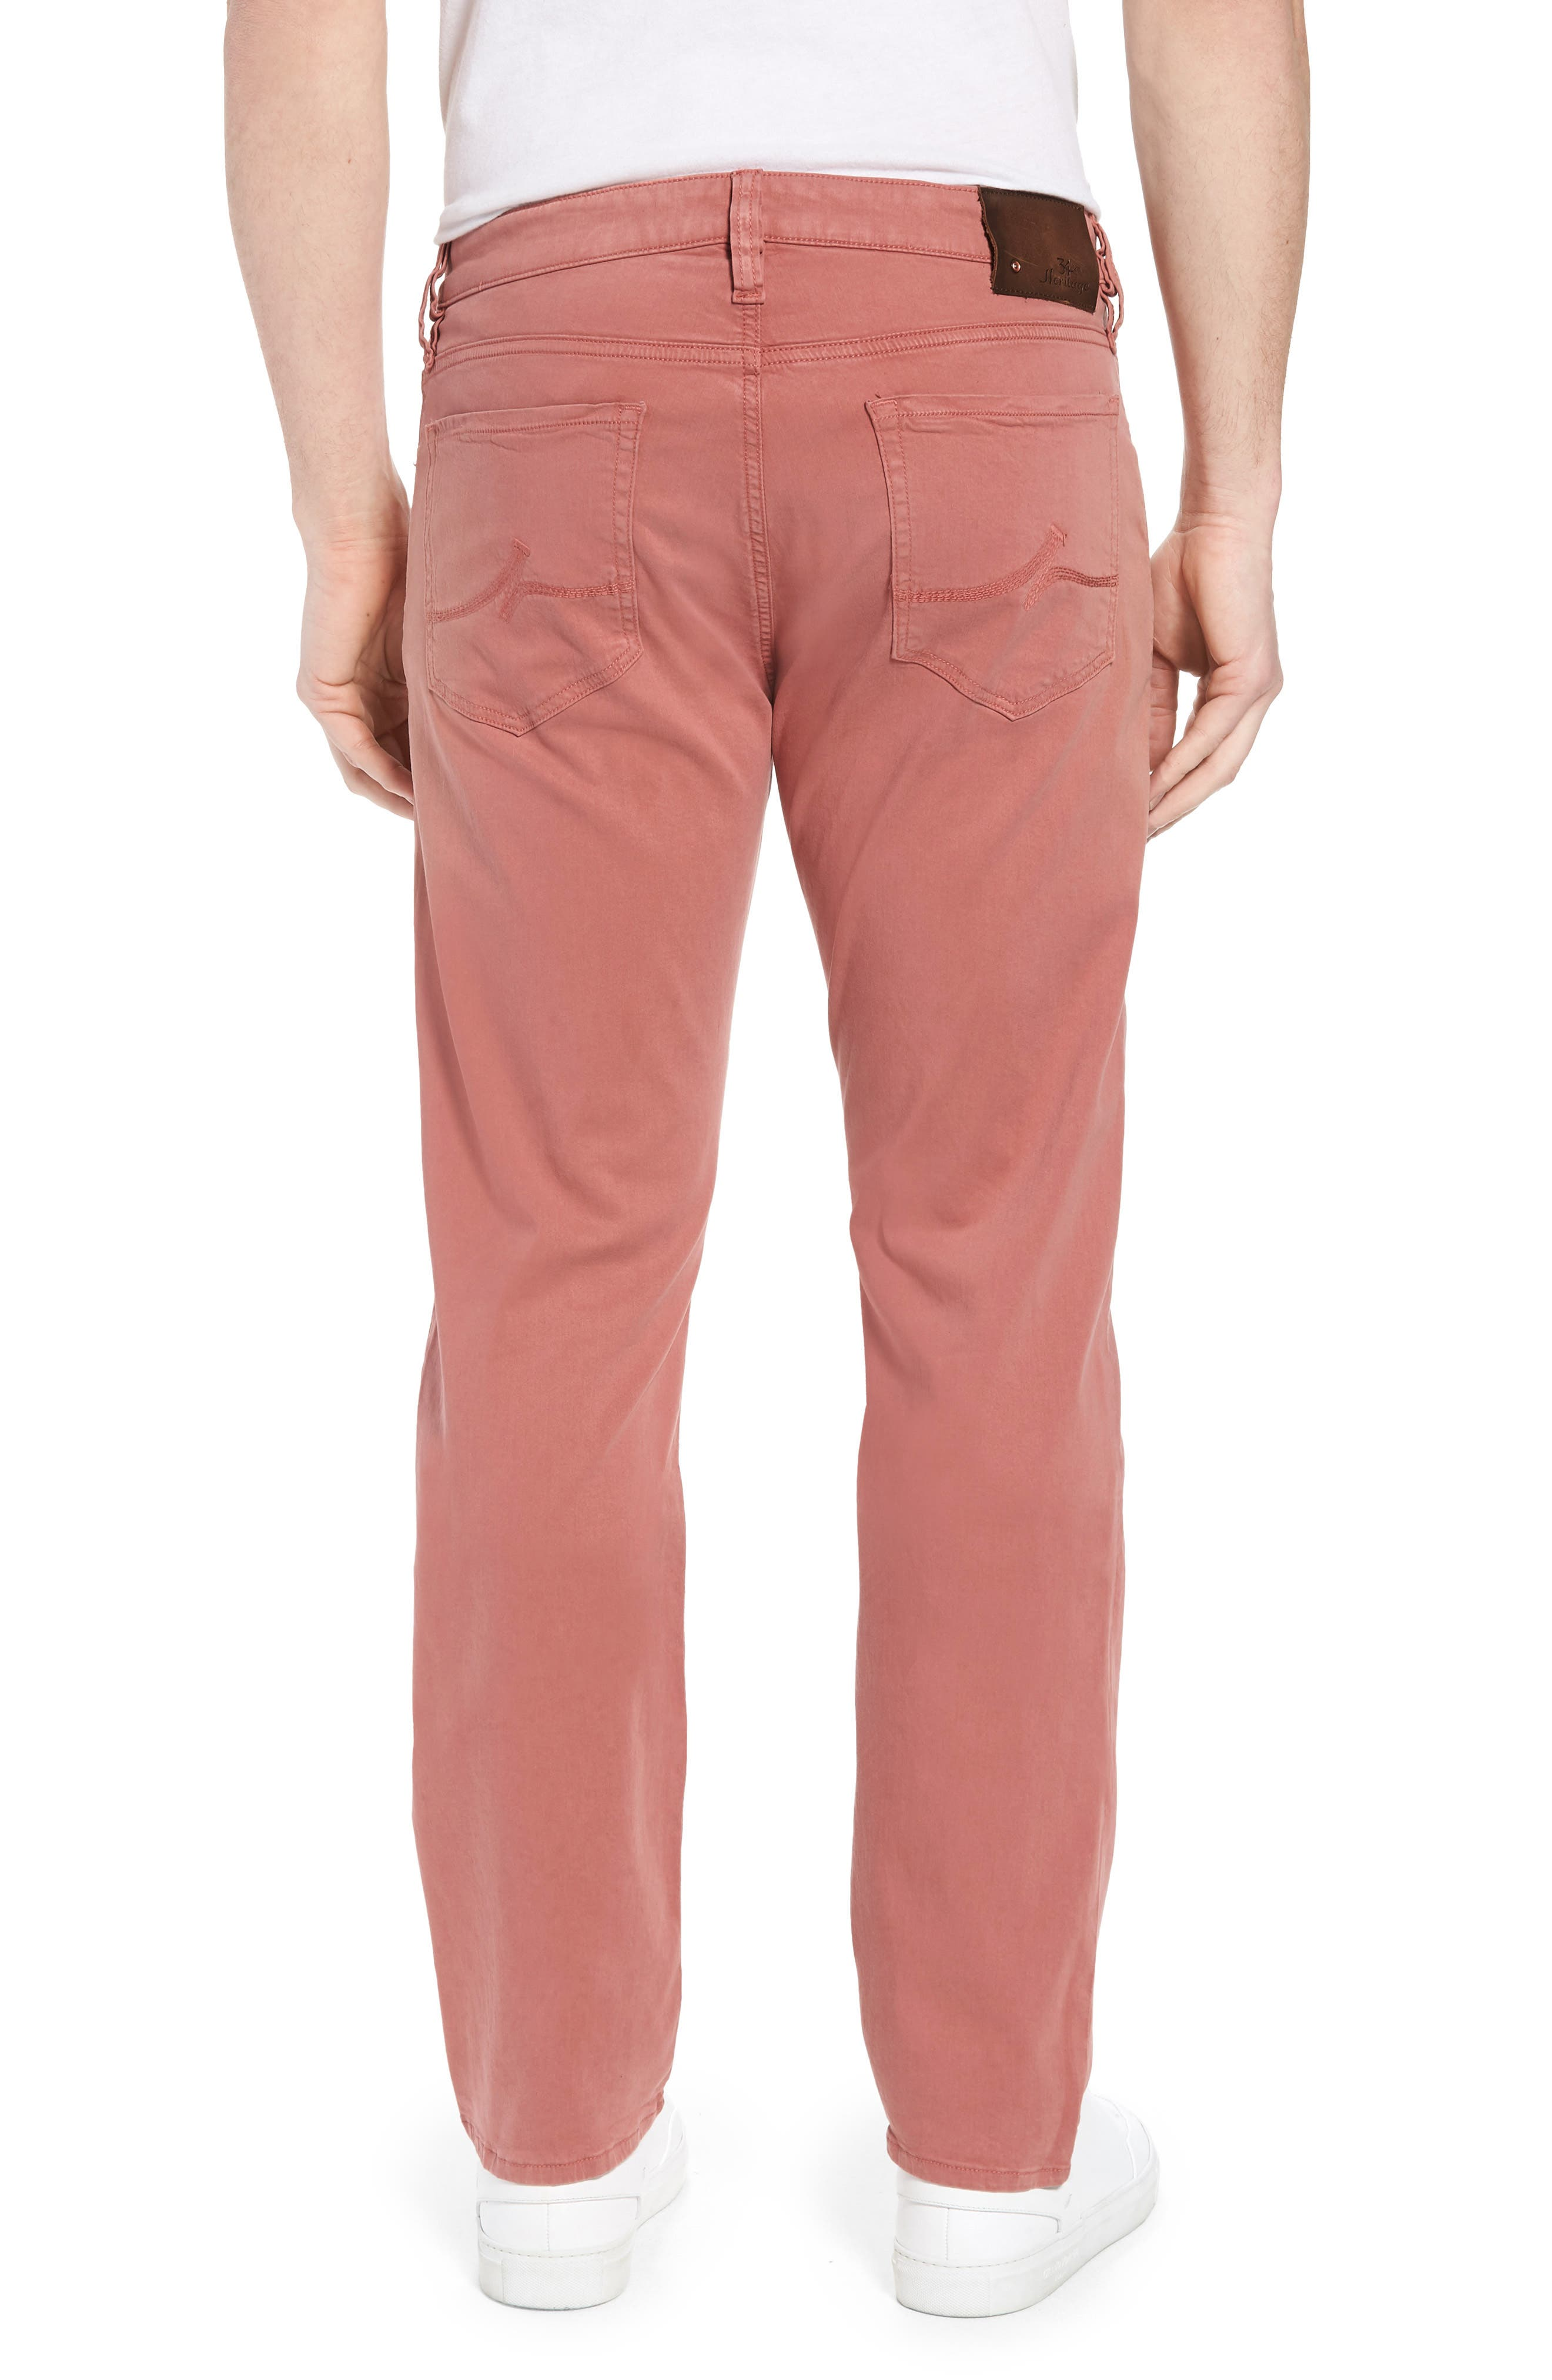 Courage Straight Leg Twill Pants,                             Alternate thumbnail 2, color,                             Brick Twill